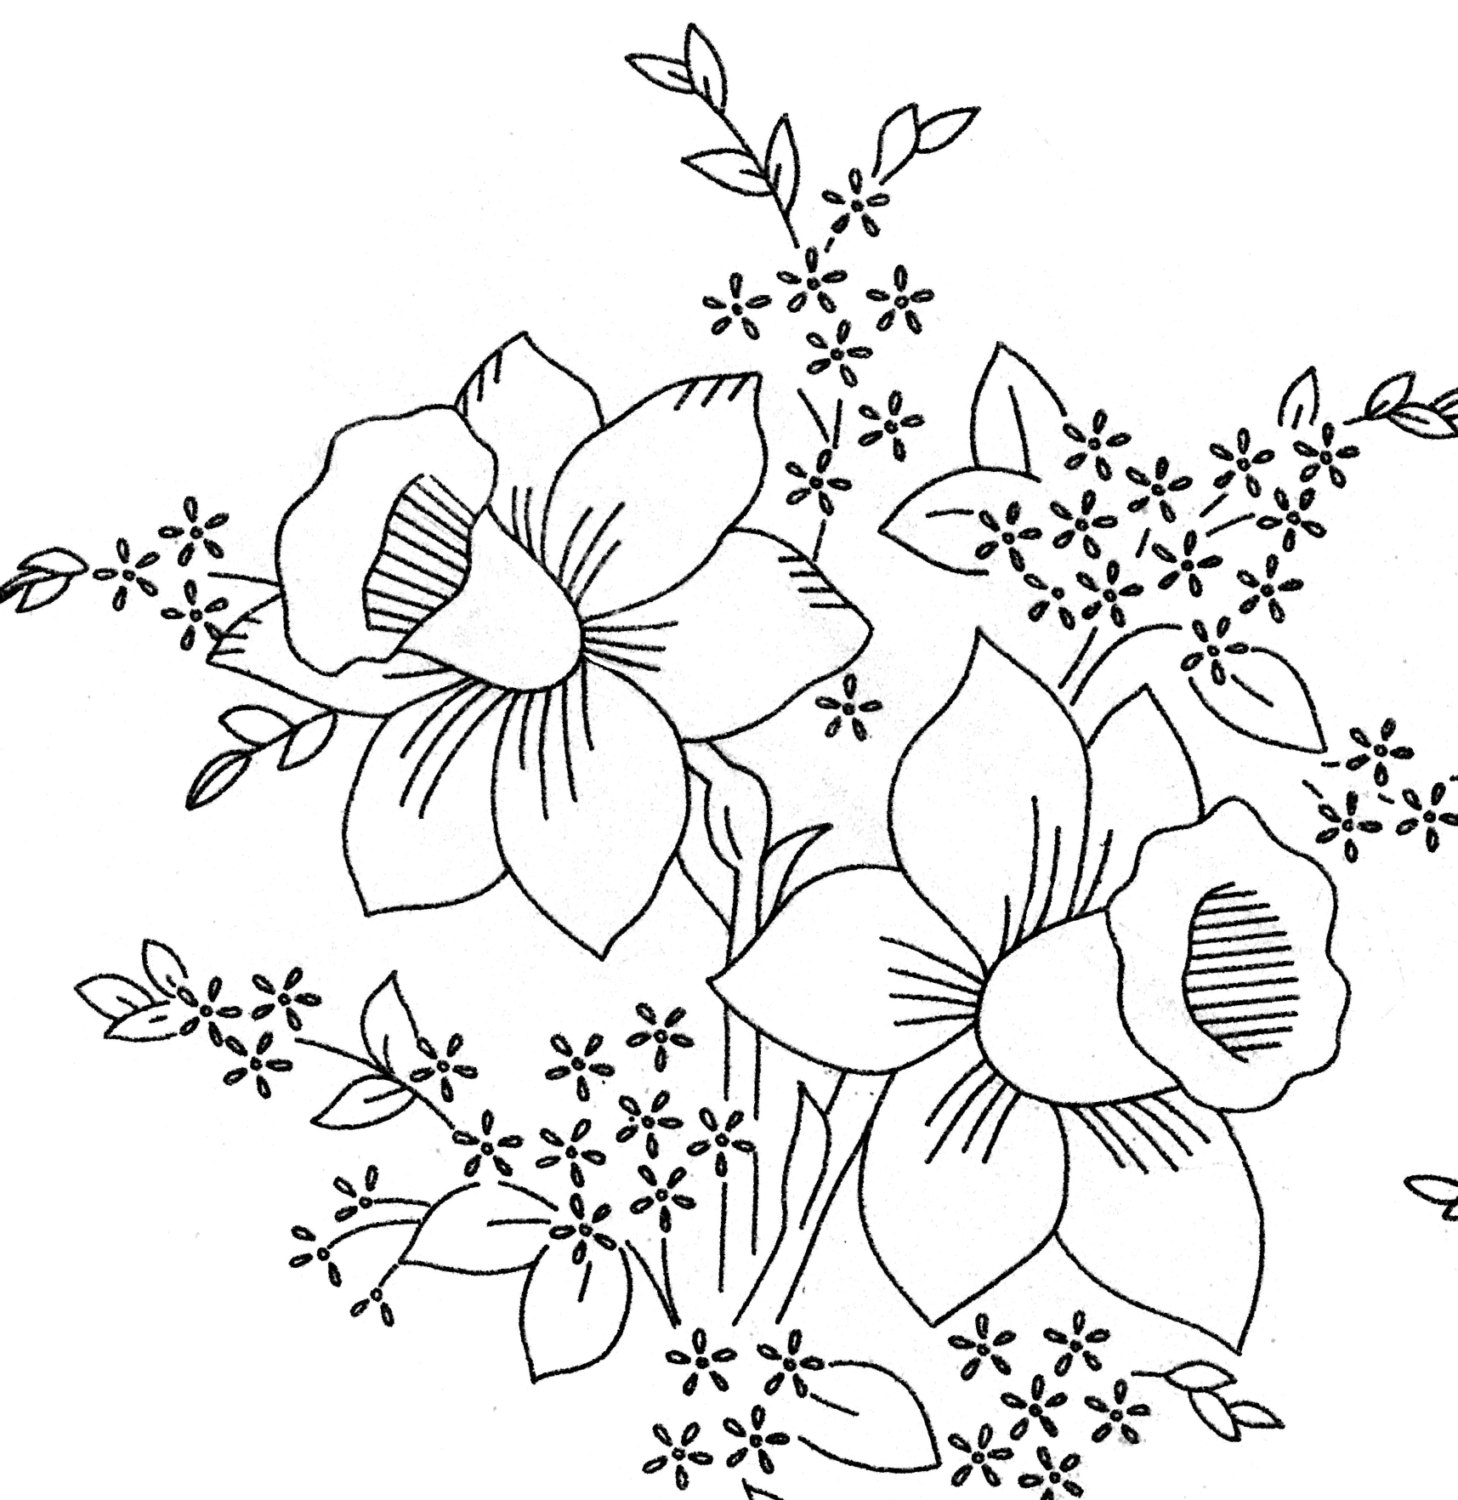 1458x1500 Old Embroidery Transfer 582 Flowers Bleeding Heart Pansy Violet